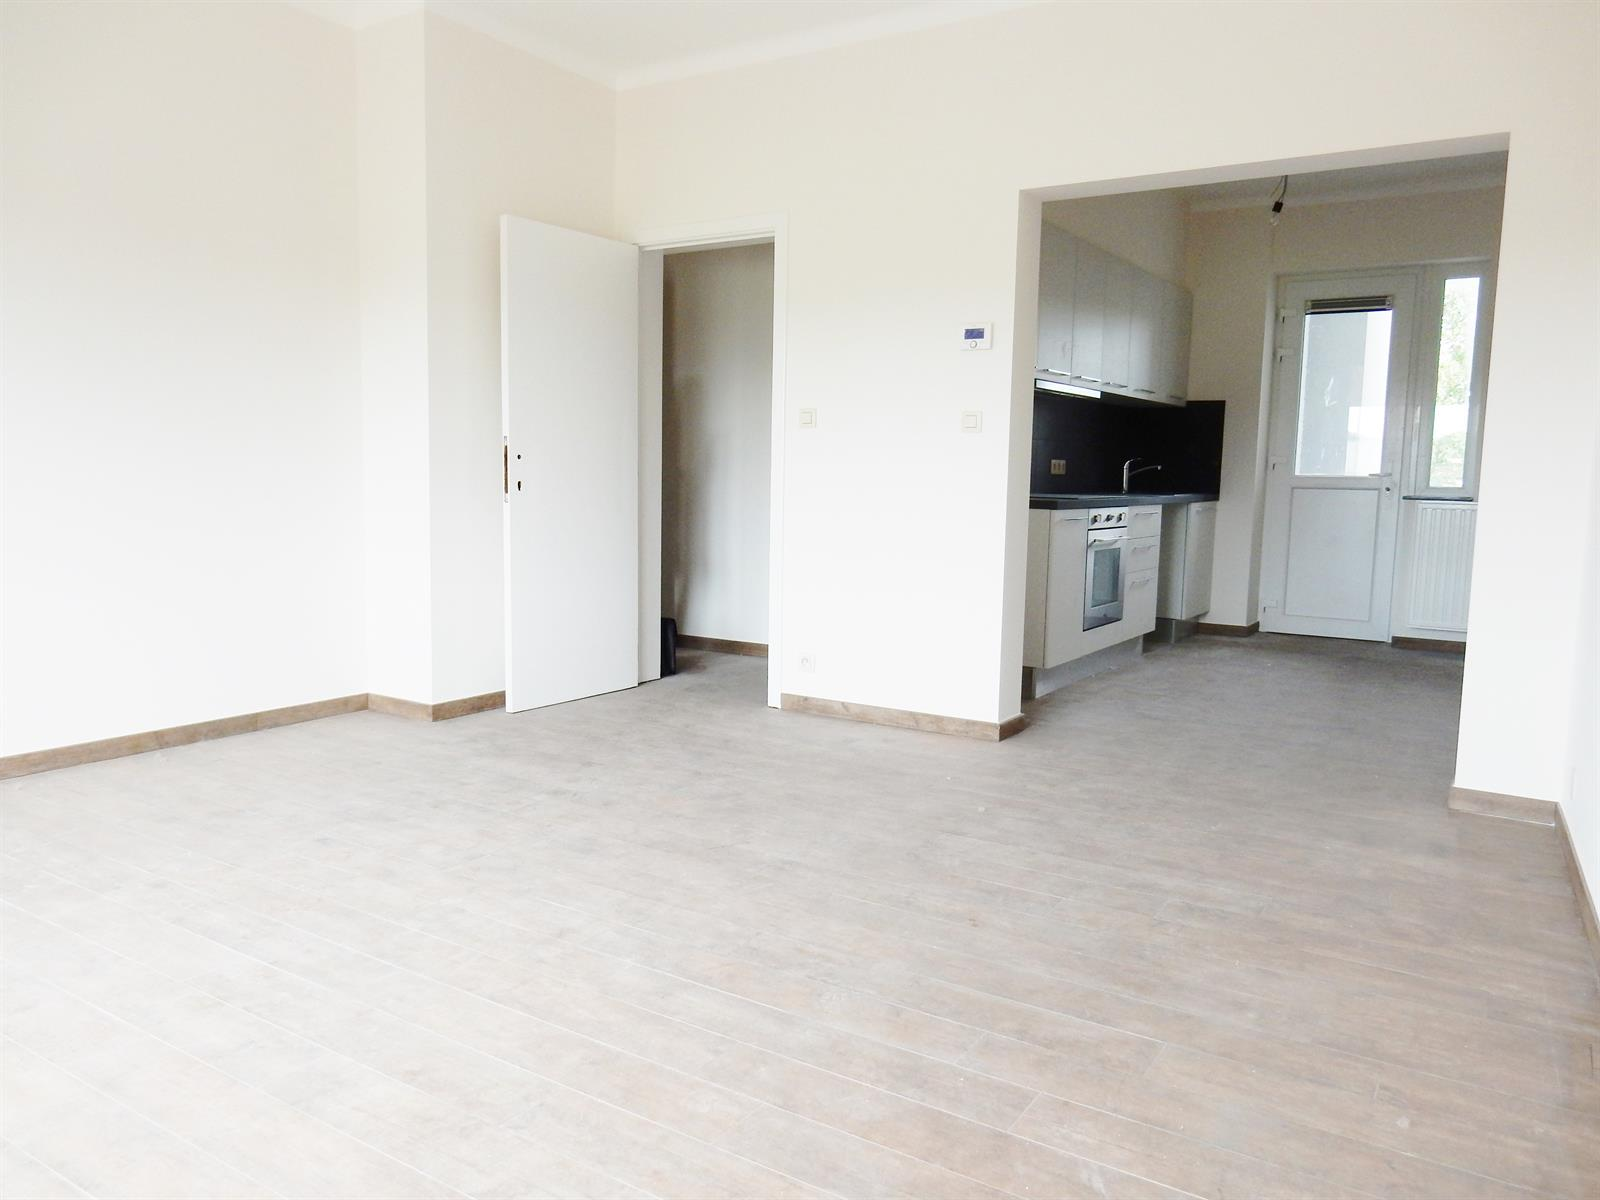 Appartement - Forest - #3862880-1